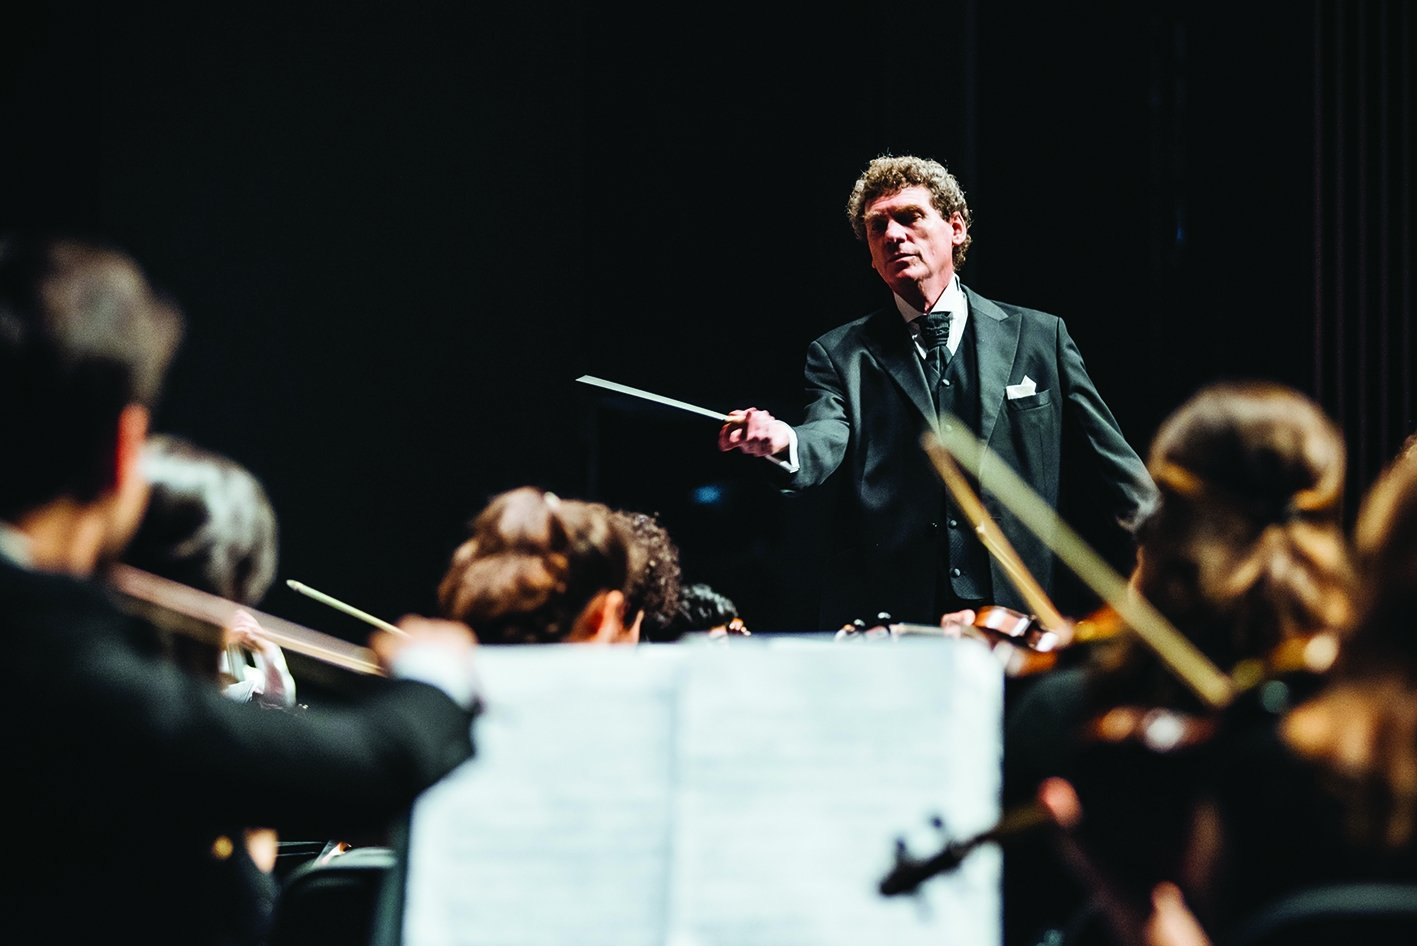 Cem Mansur prepared the themes for the Cemal Reşit Rey (CRR) Symphony Orchestra's concert series.